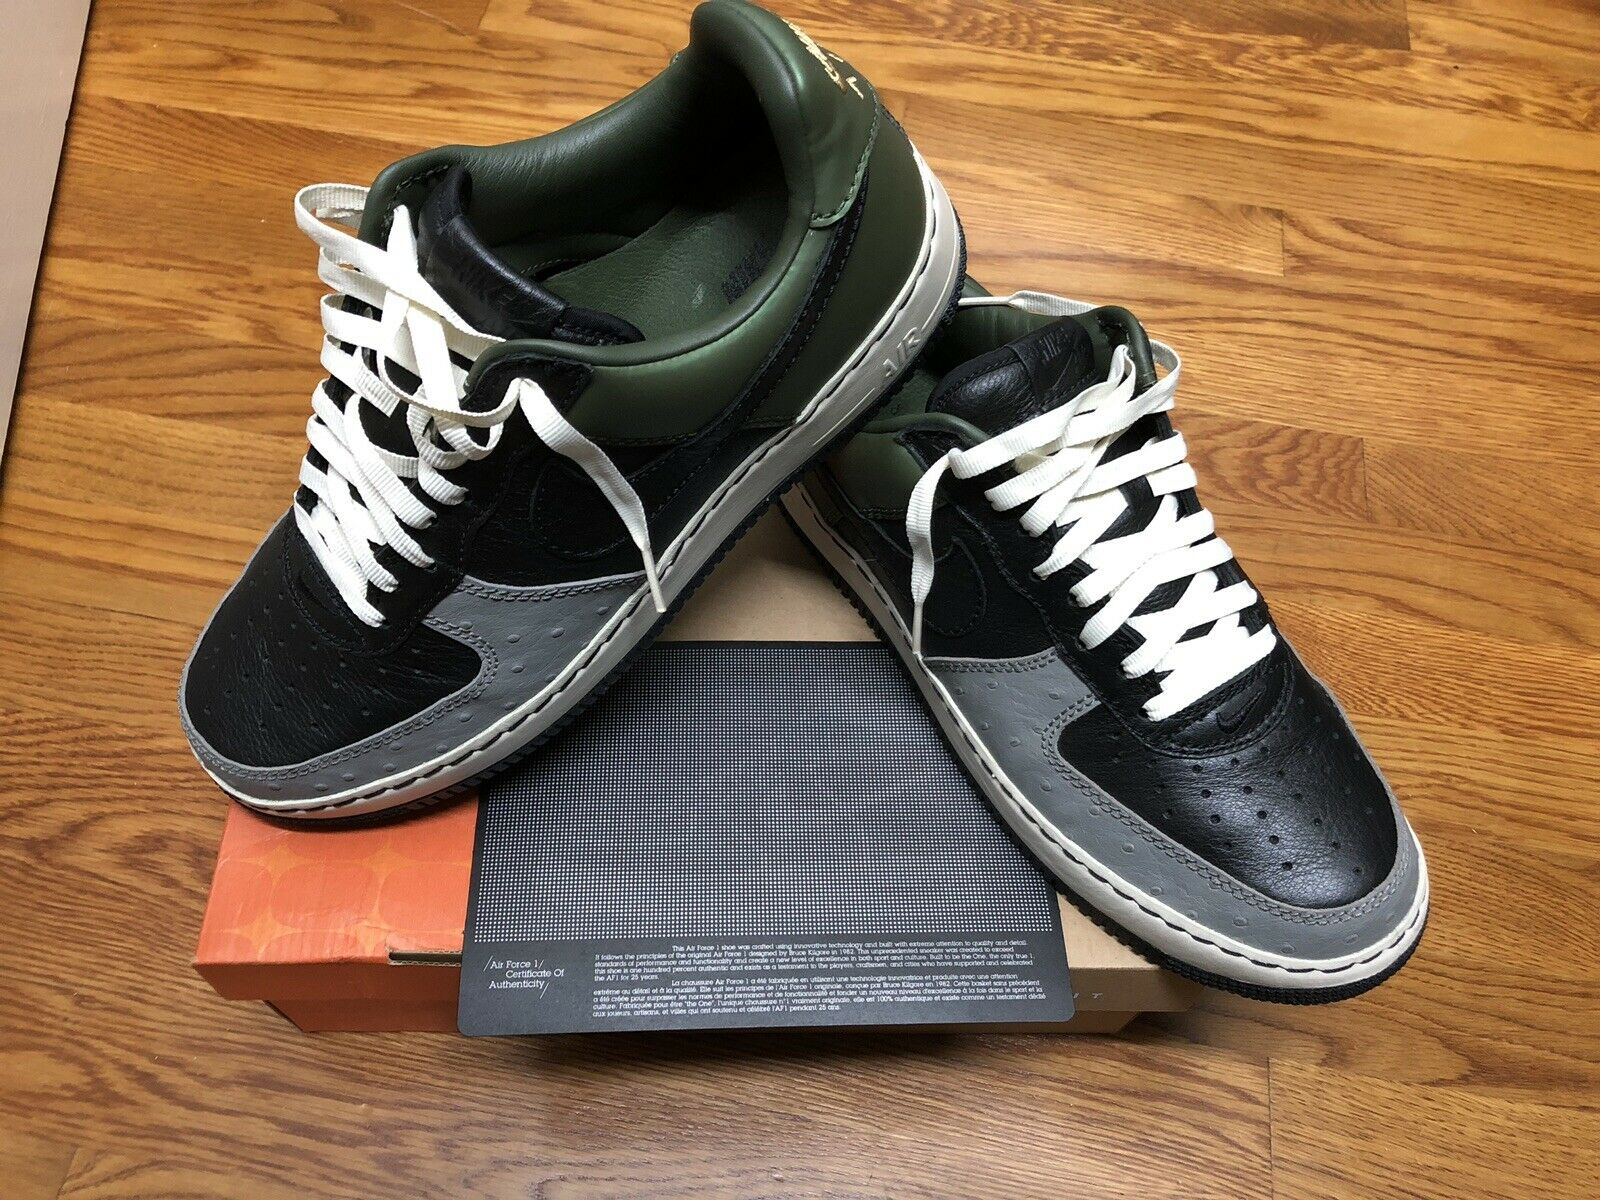 Nike Air Force 1 AF1 Low INSIDEOUT IO UN-MITA UNMITA BLACK OLIVE Size 12